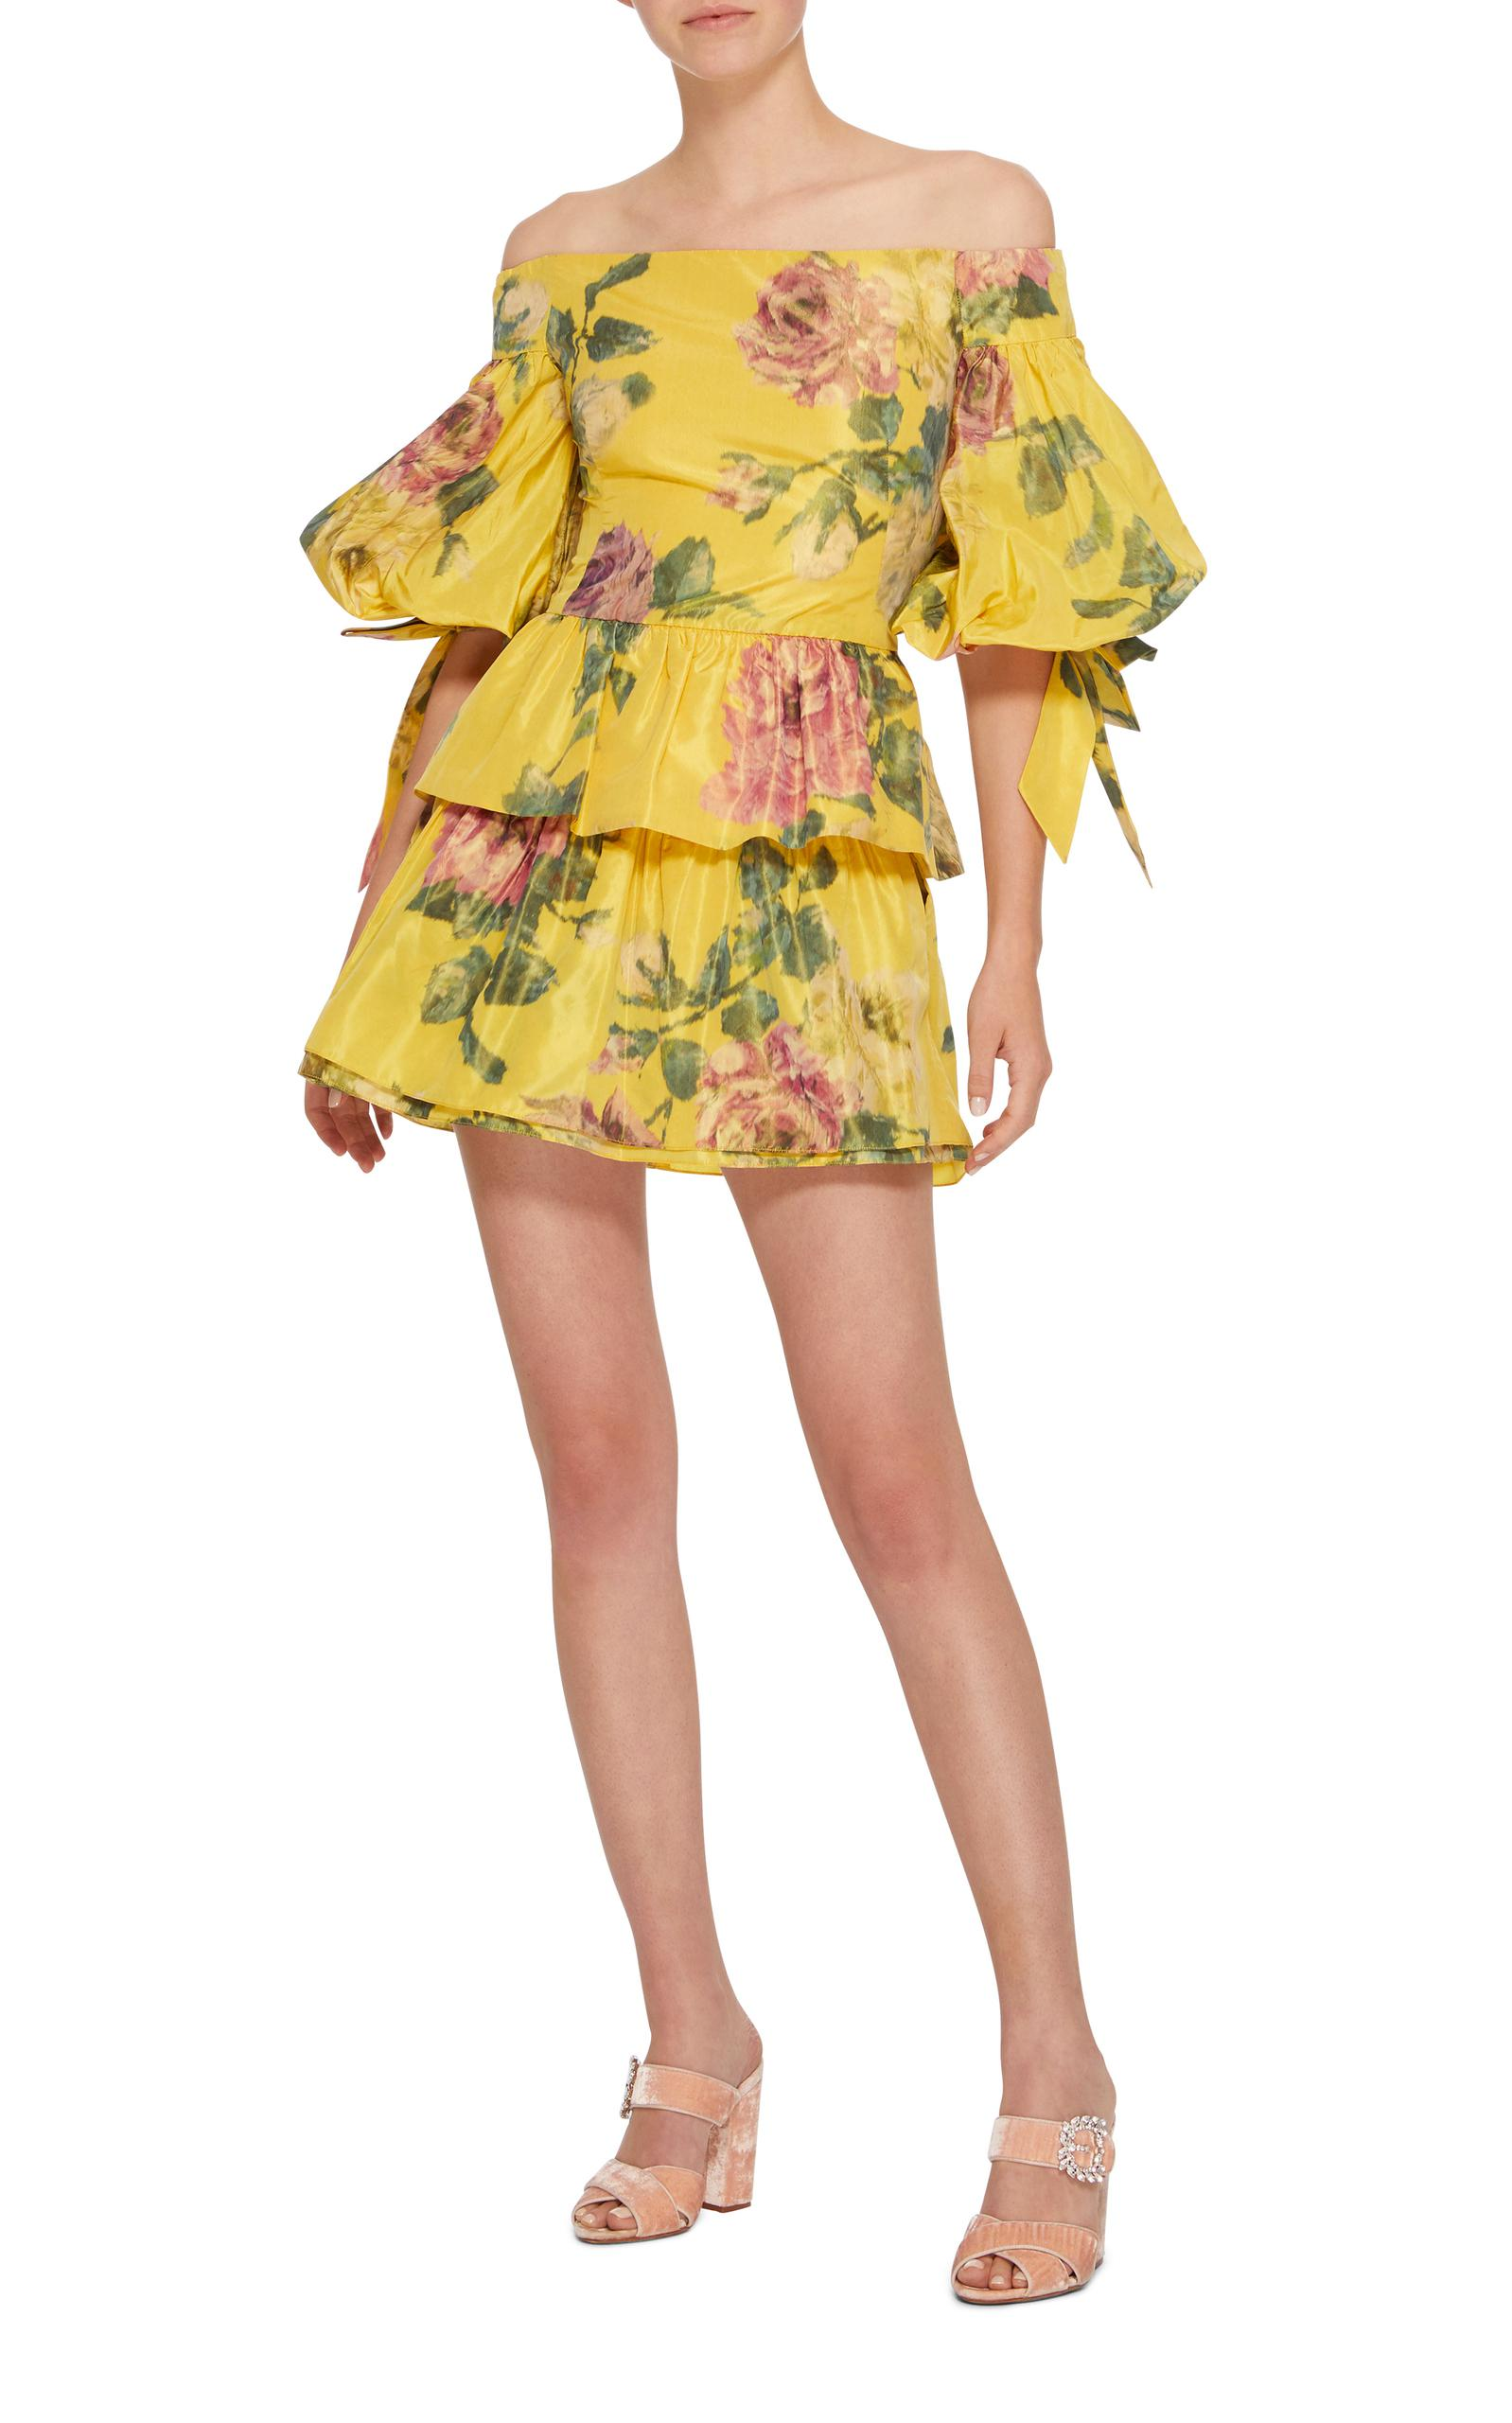 961d790a8173f Lyst - Marchesa Floral Print Off-shoulder Blouse in Yellow